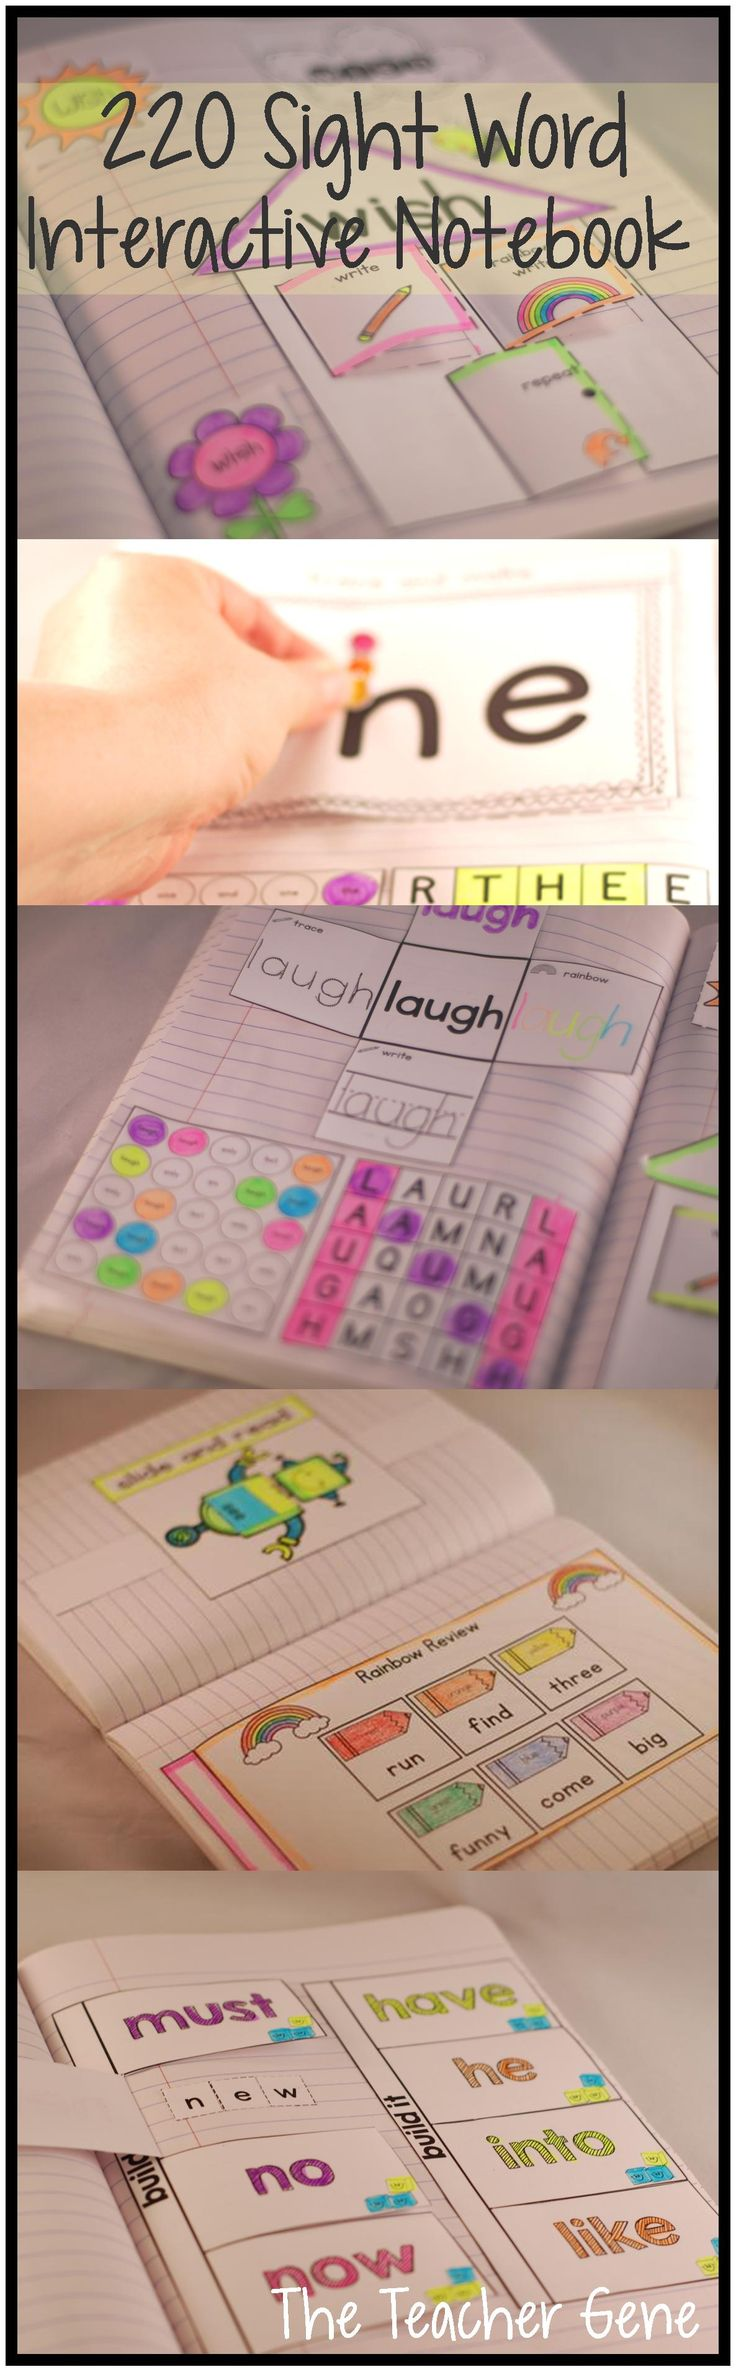 Helping Your Child With Spelling - Child Development Institute